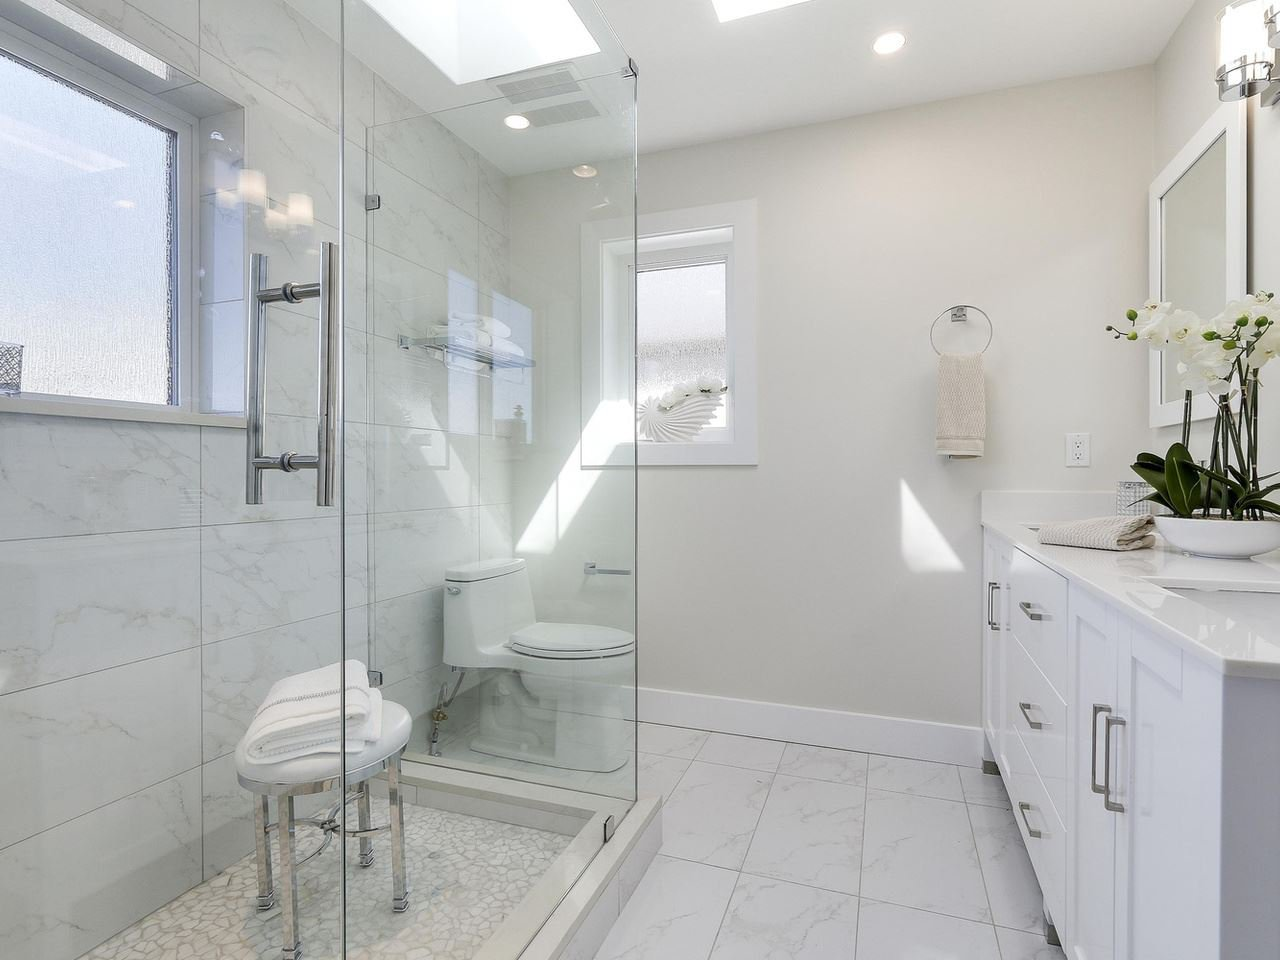 Photo 13: Photos: 3539 ETON STREET in Vancouver: Hastings East House for sale (Vancouver East)  : MLS®# R2159493